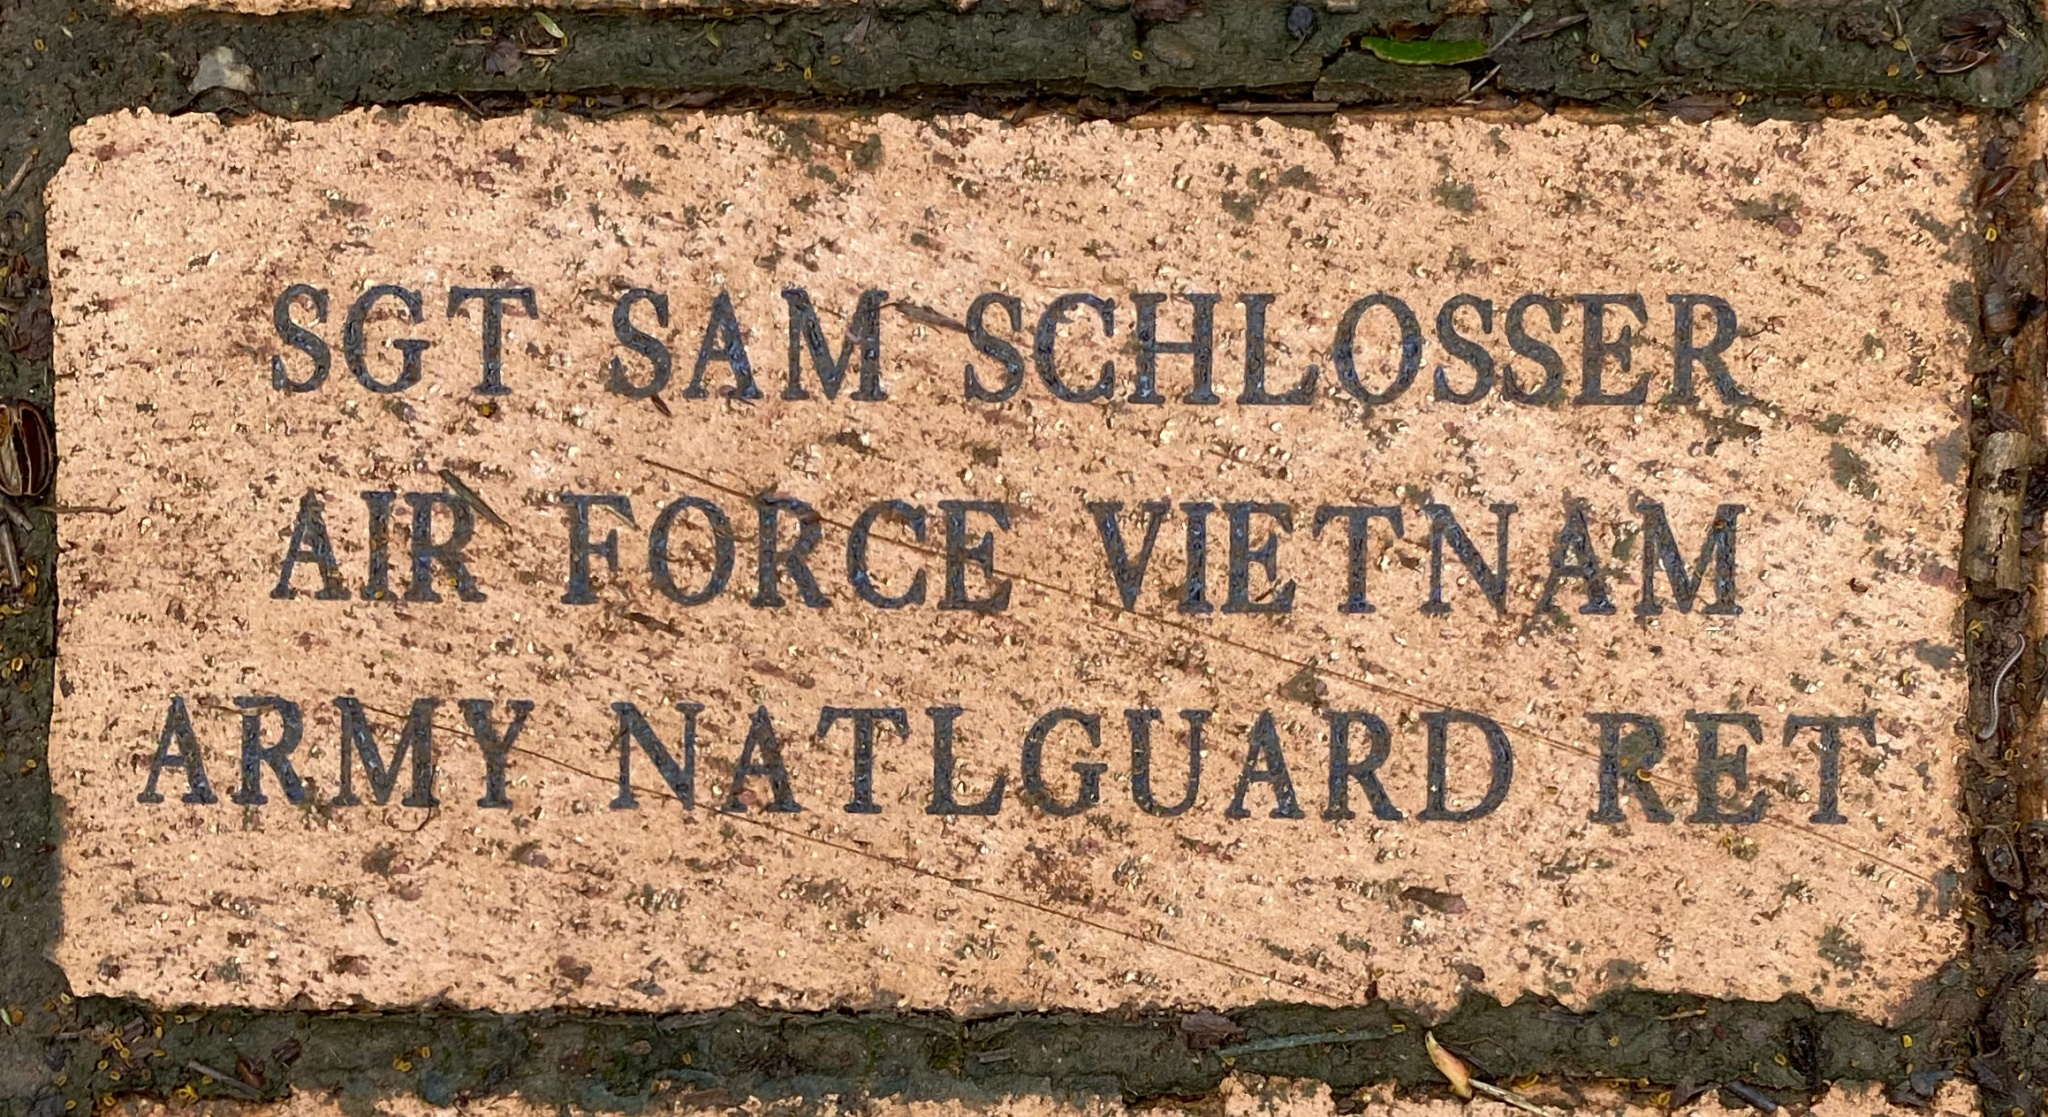 SGT SAM SCHLOSSER AIR FORCE VIETNAM ARMY NATLGUARD RET